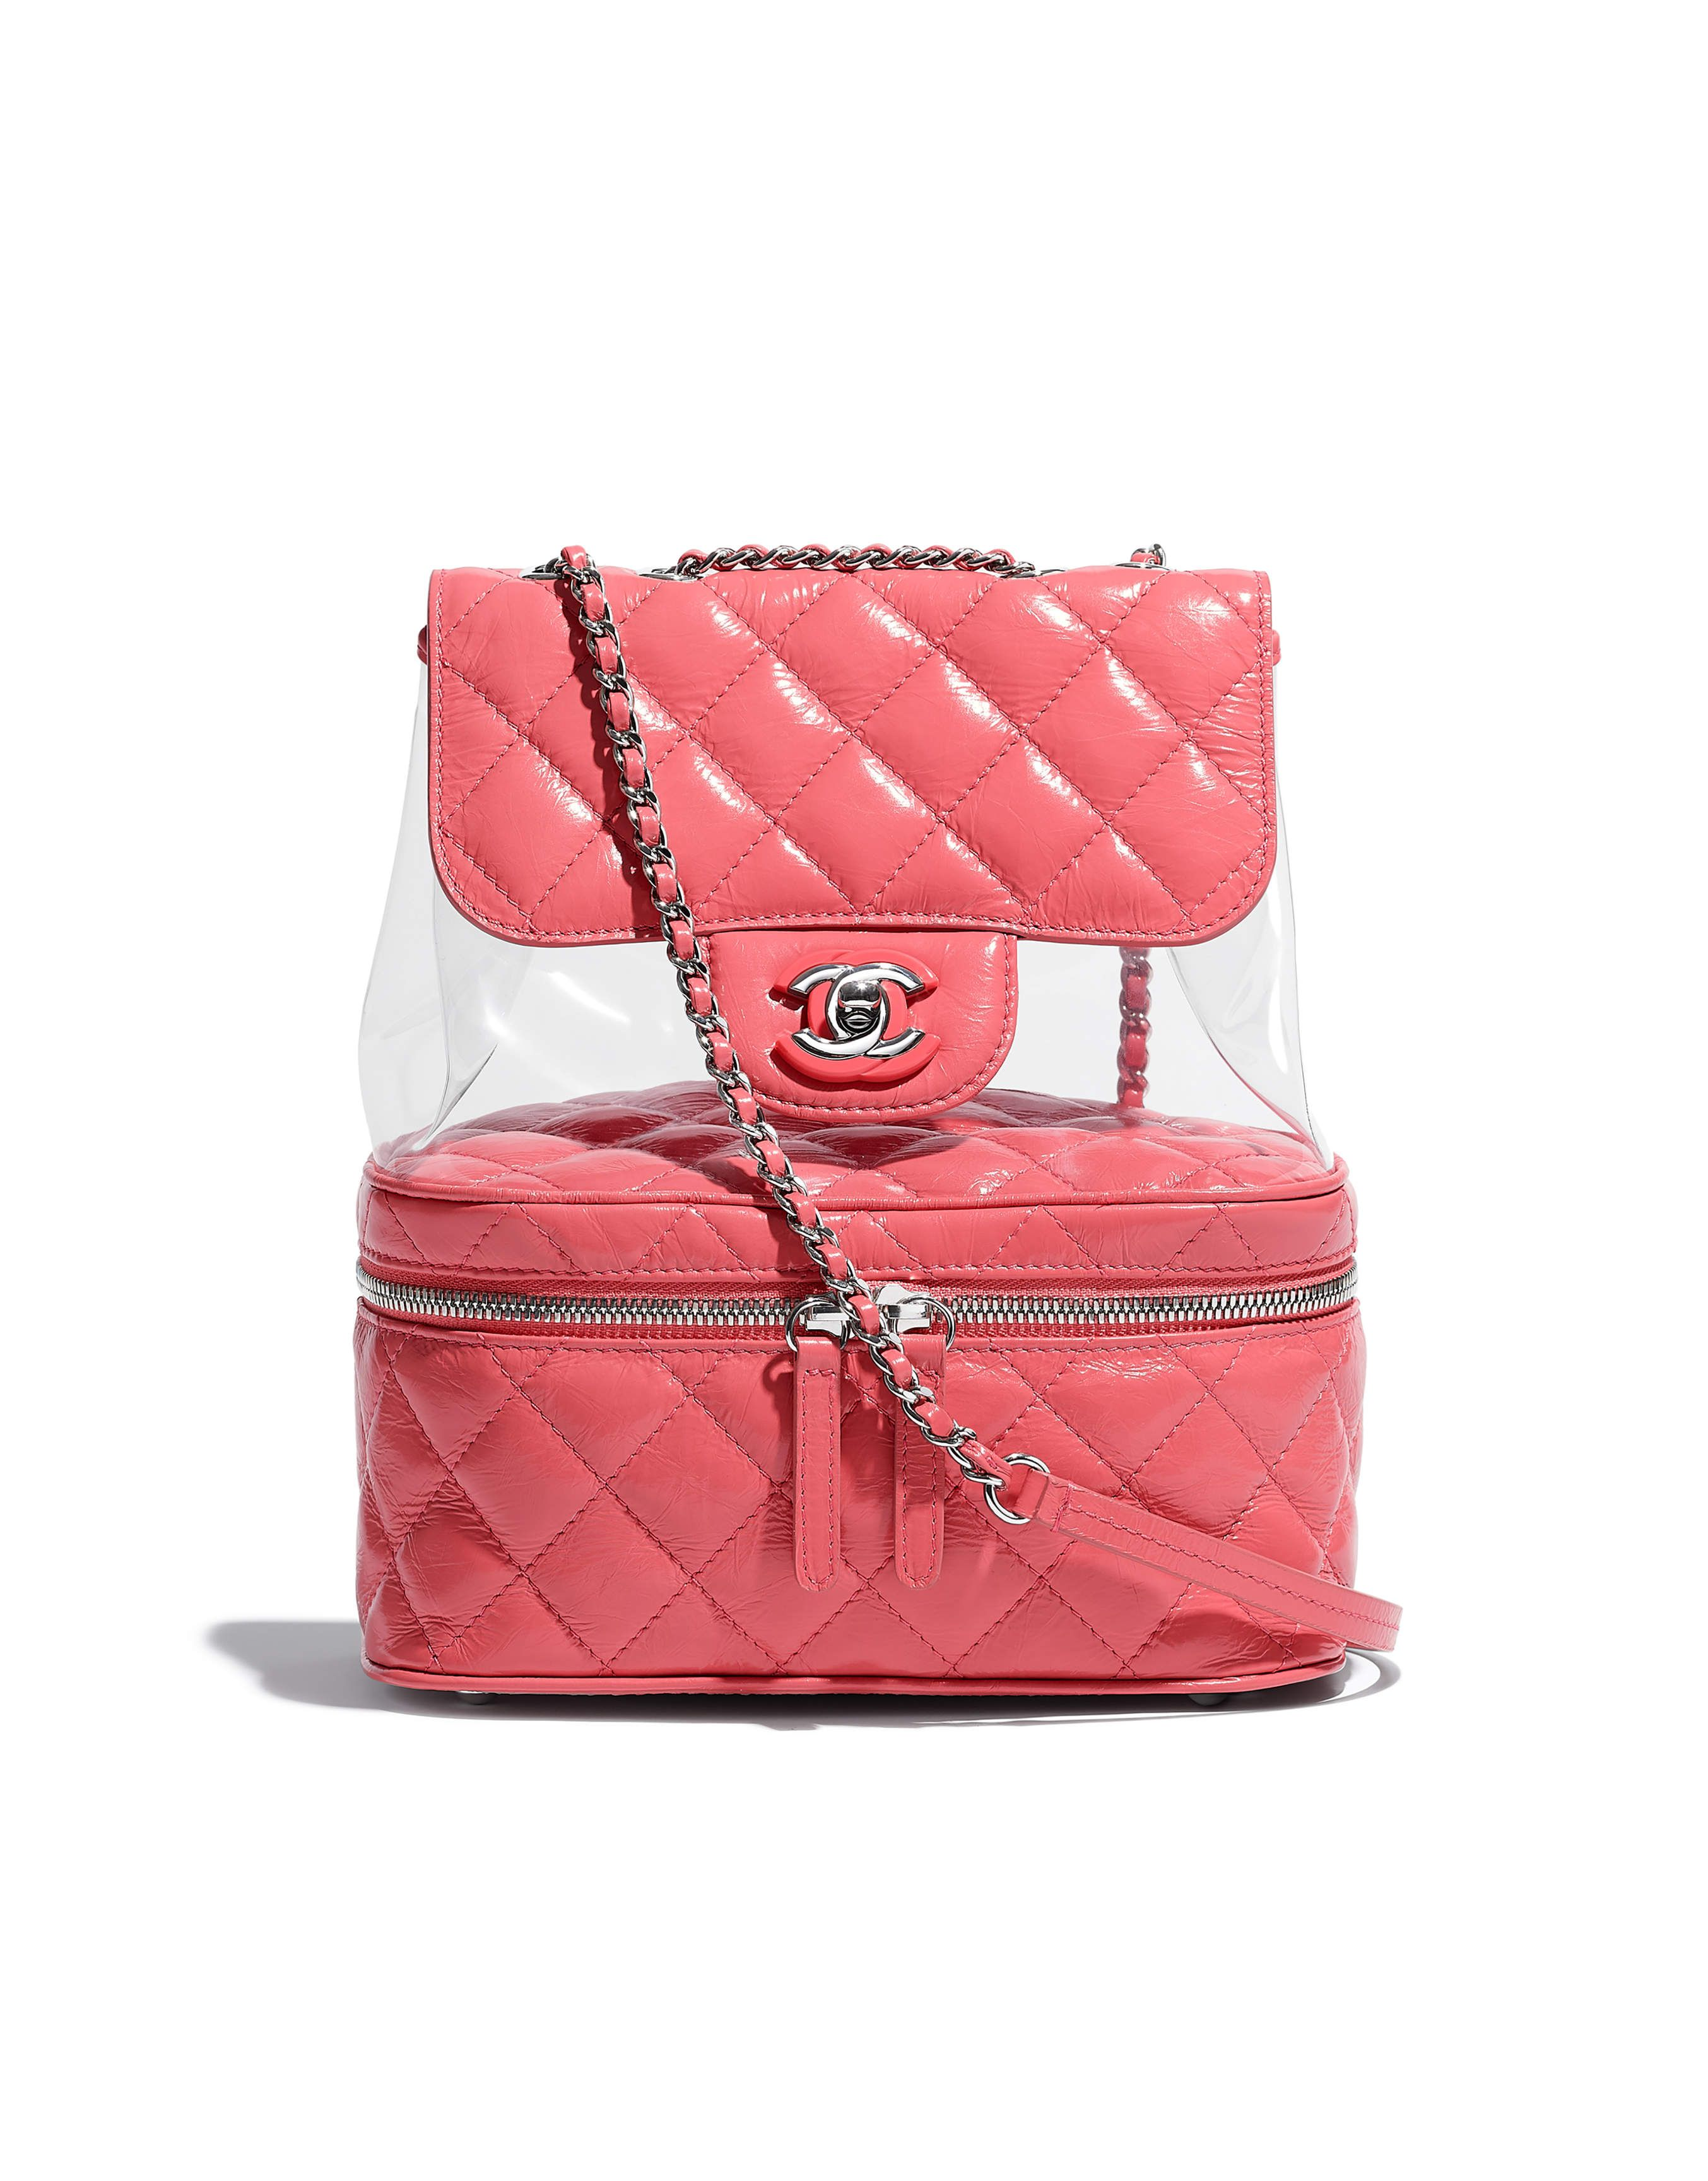 af5a29819aa3 The SPRING-SUMMER 2018 Handbags collection on the CHANEL official website